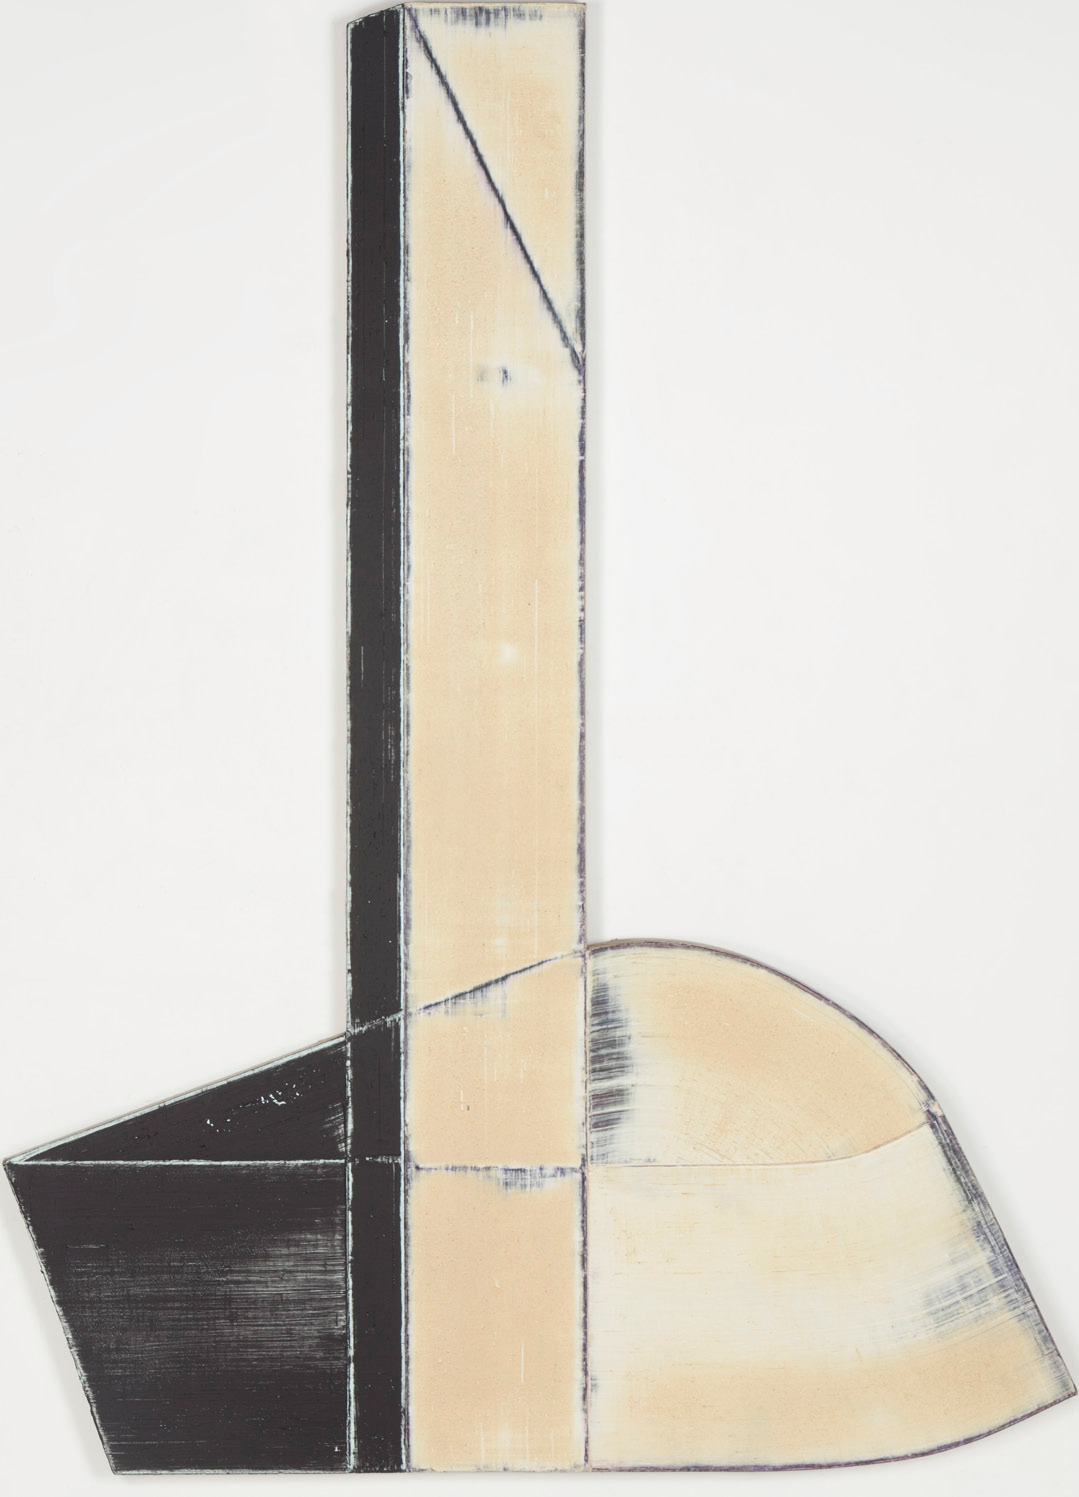 Study for My Life and Music (1979) by Harvey Quaytman